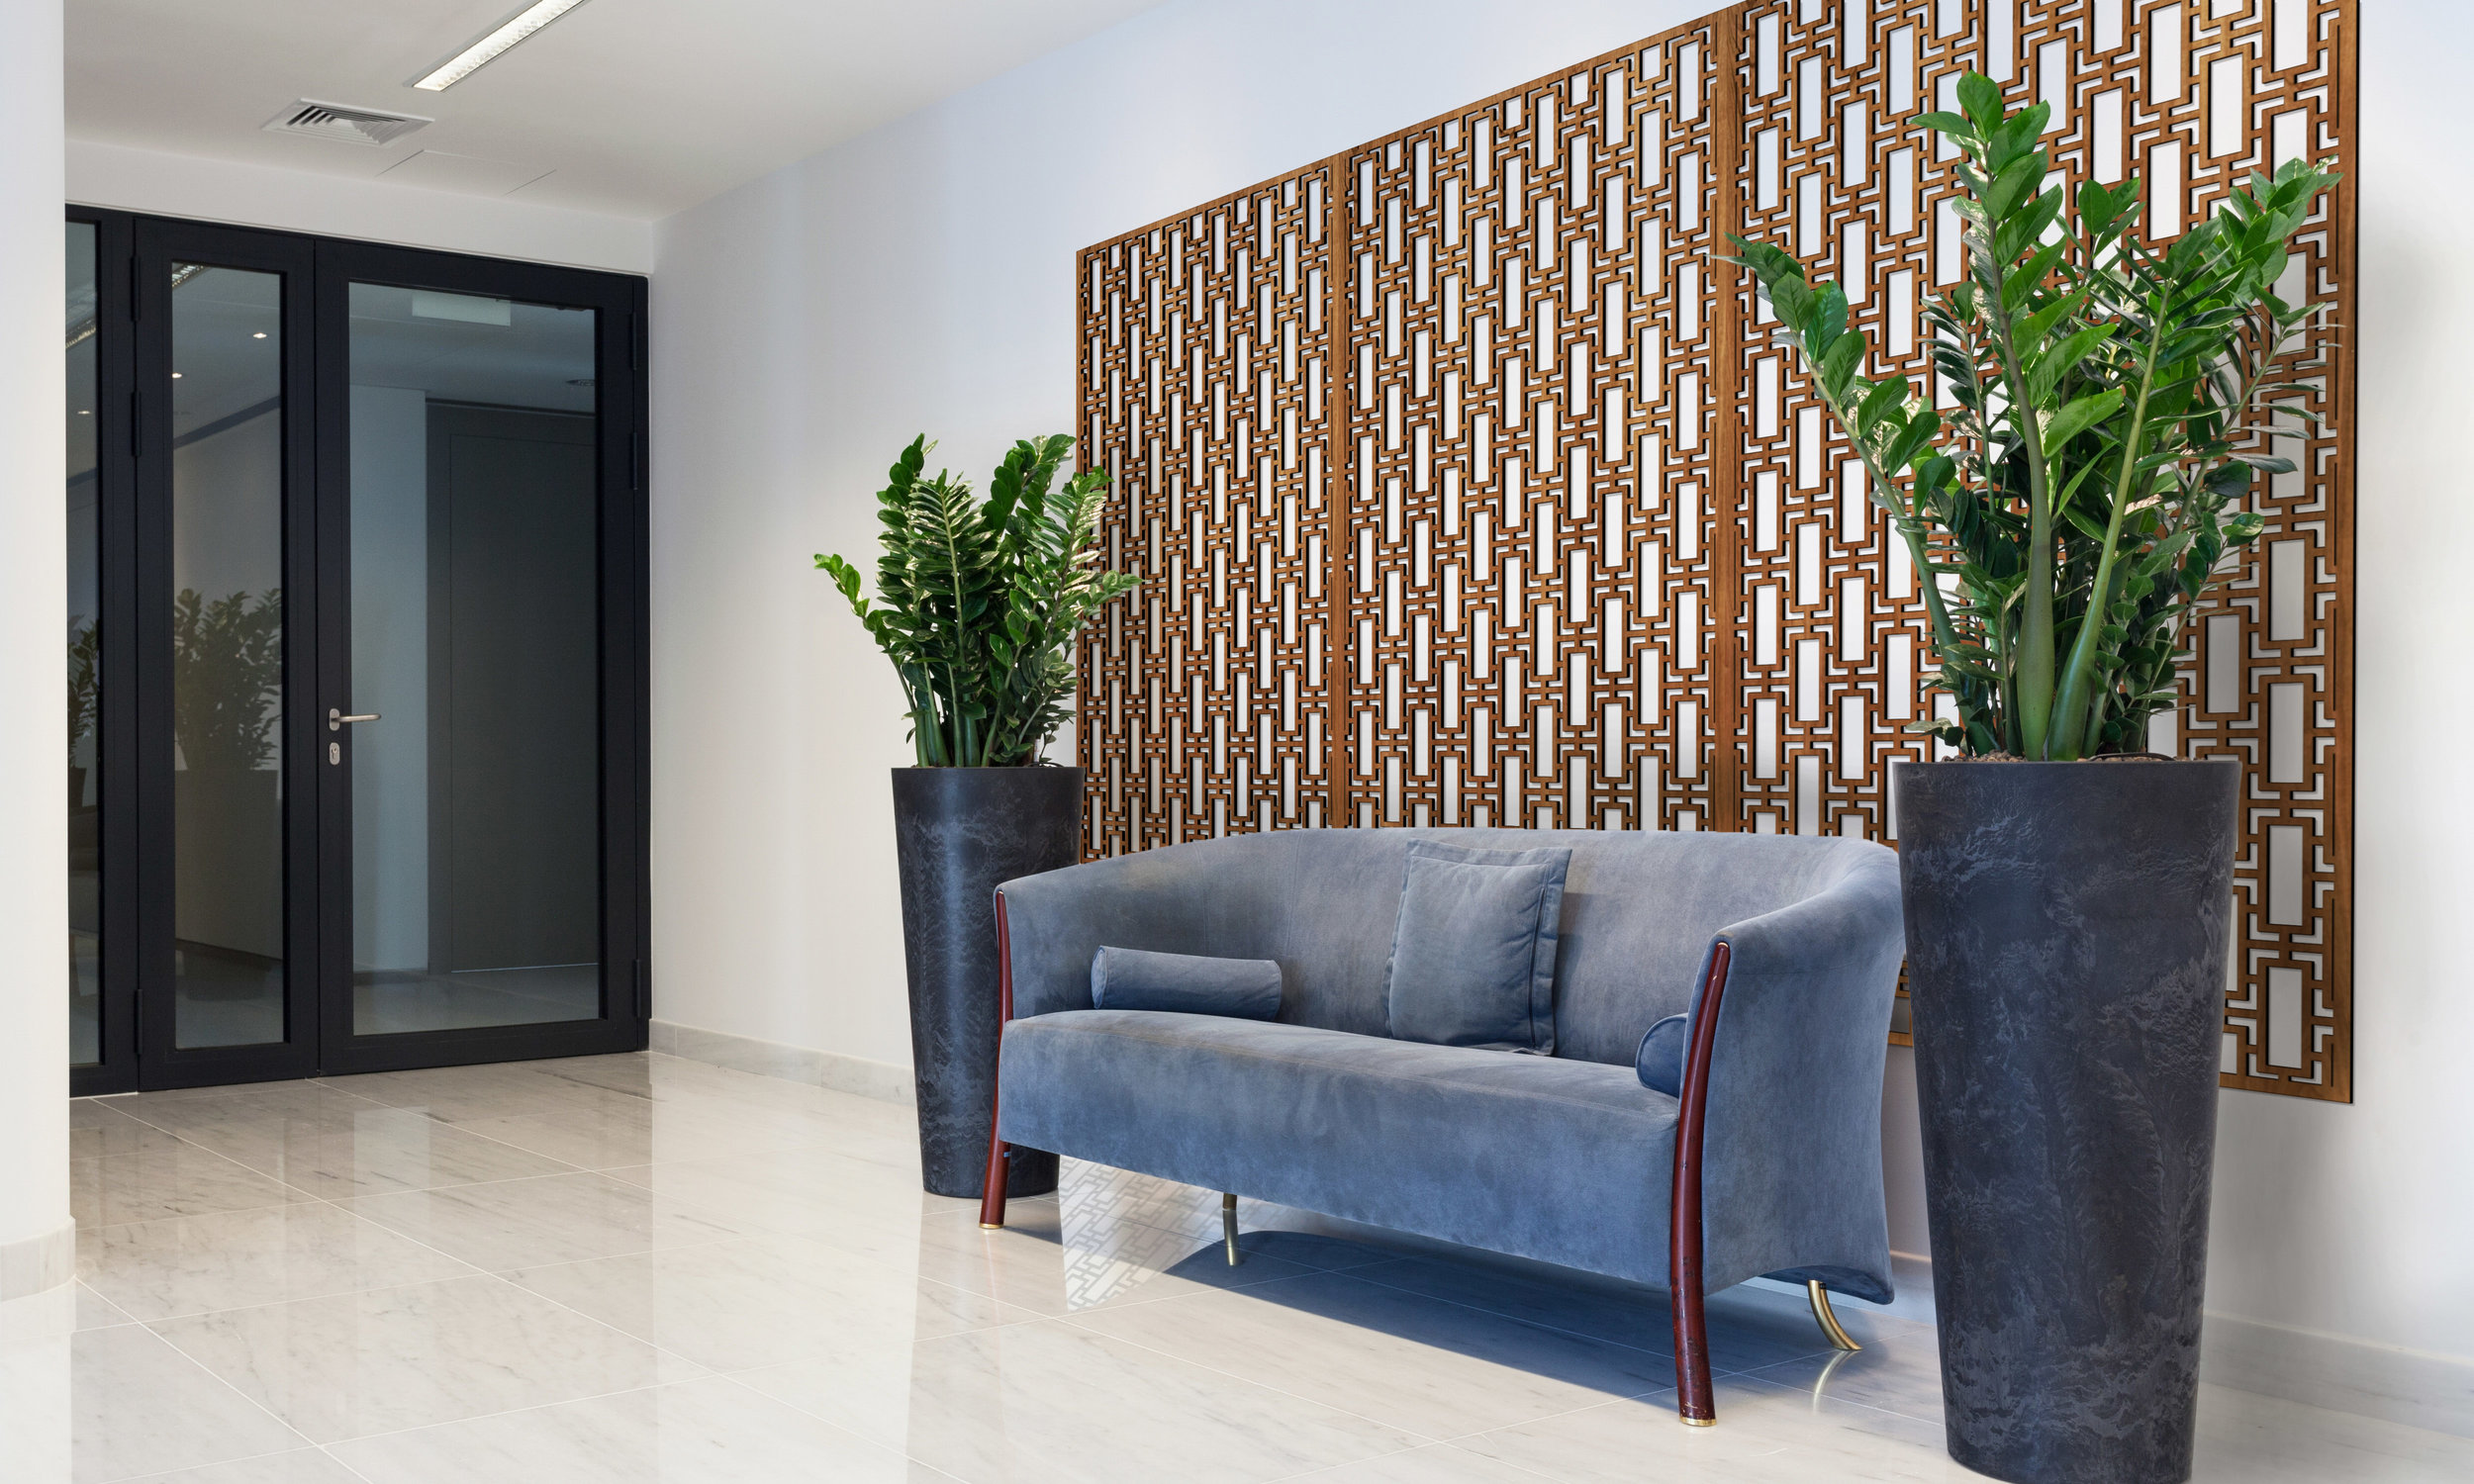 Installation Rendering A   Rectangular Lattice decorative office wall panel - shown in Cherry